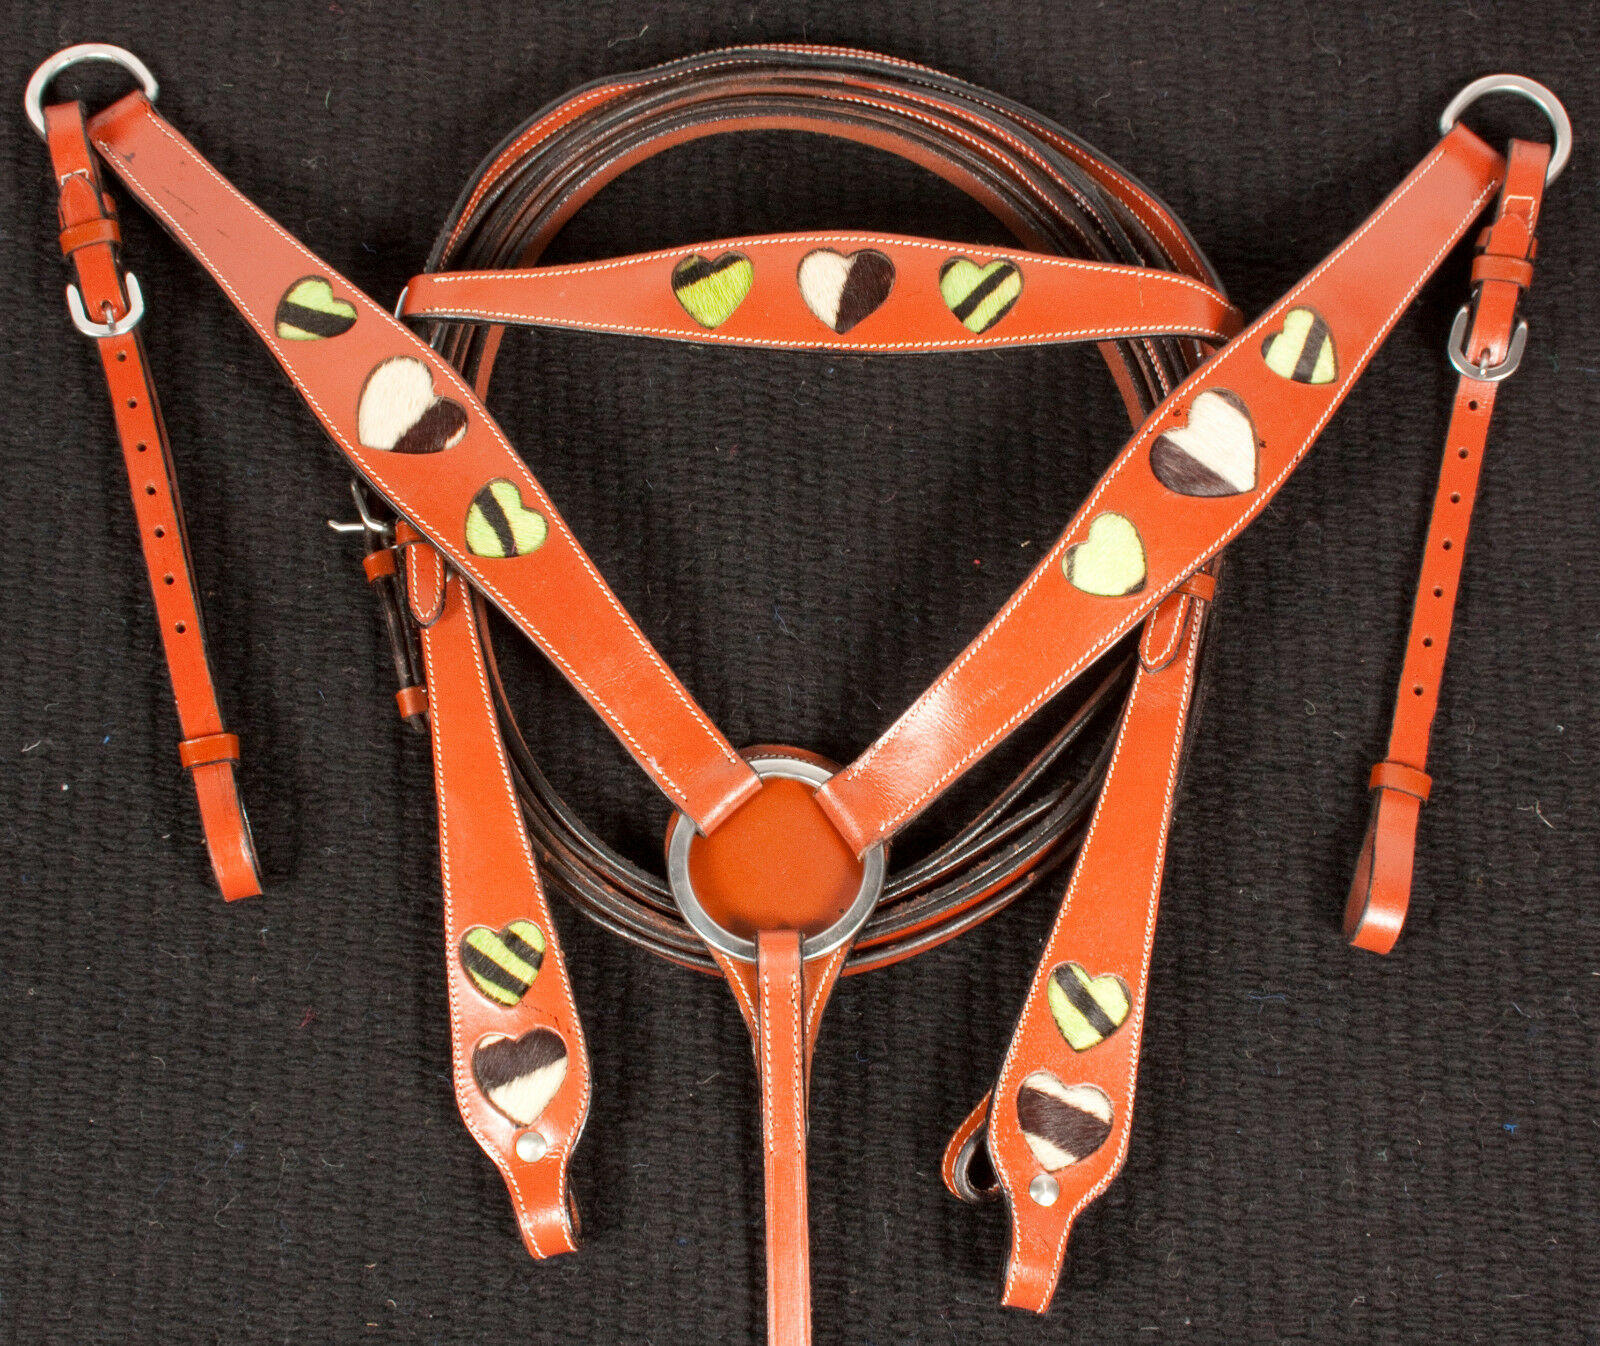 GREEN ZEBRA HEAR HEADSTALL BREAST  COLLAR REINS LEATHER WESTERN HORSE TAC  store